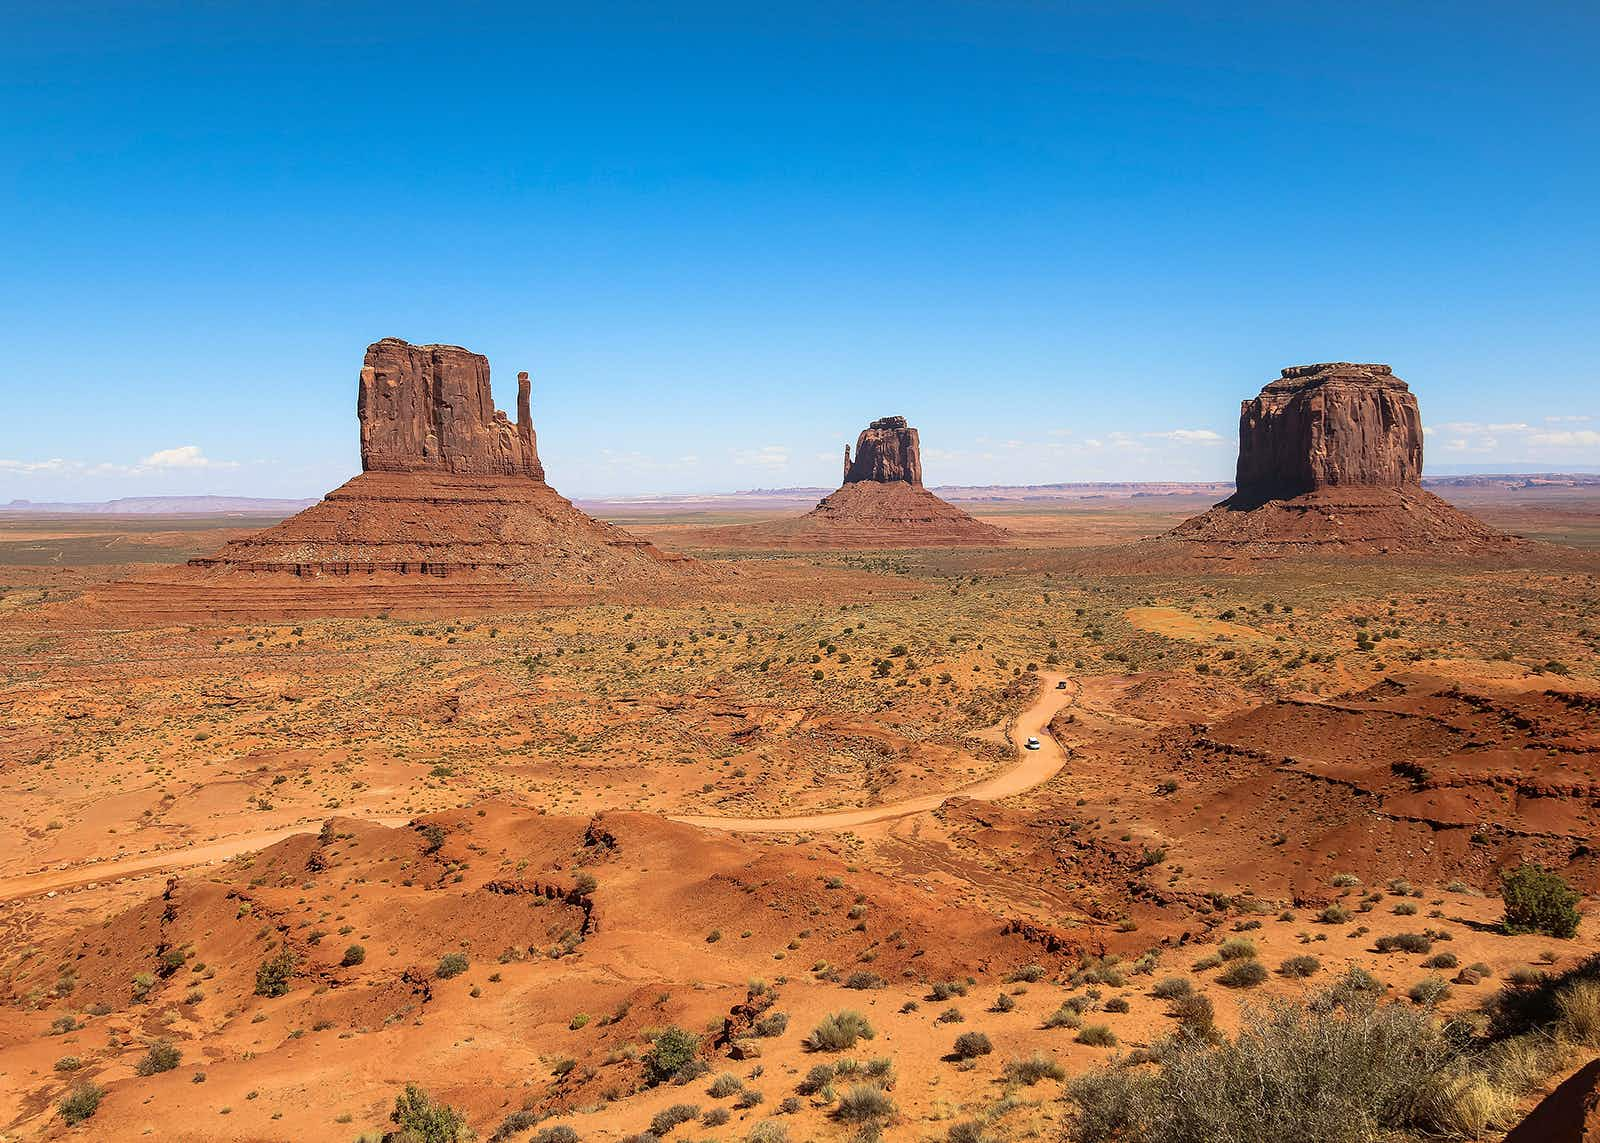 Monument Valley, view over the scenic landscape; Shutterstock ID 760516855; Your name (First / Last): James Kay; GL account no.: 65050; Netsuite department name: Online editorial; Full Product or Project name including edition: LP.com article about 'US road trips inspired by TV and movies